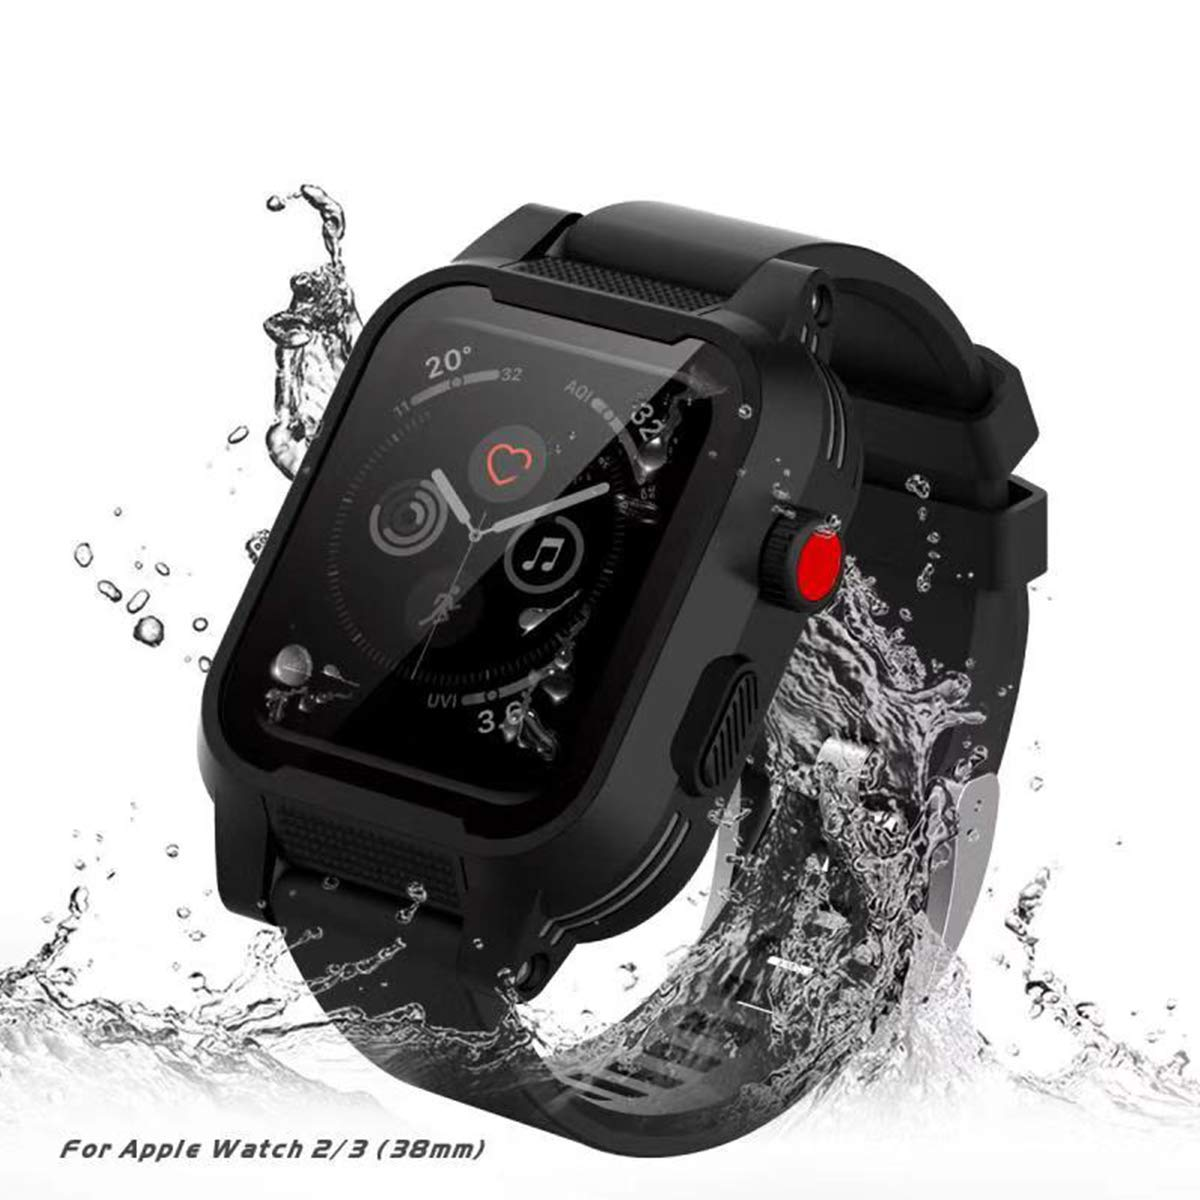 [Waterproof Case for 38mm] AIUERU Waterproof Watch Case with IP68 and Resilient Shock Absorption for 38mm Apple Watch Series 3 and 2 / with 2 Soft Silicone Watch Band - Black by Shellbox